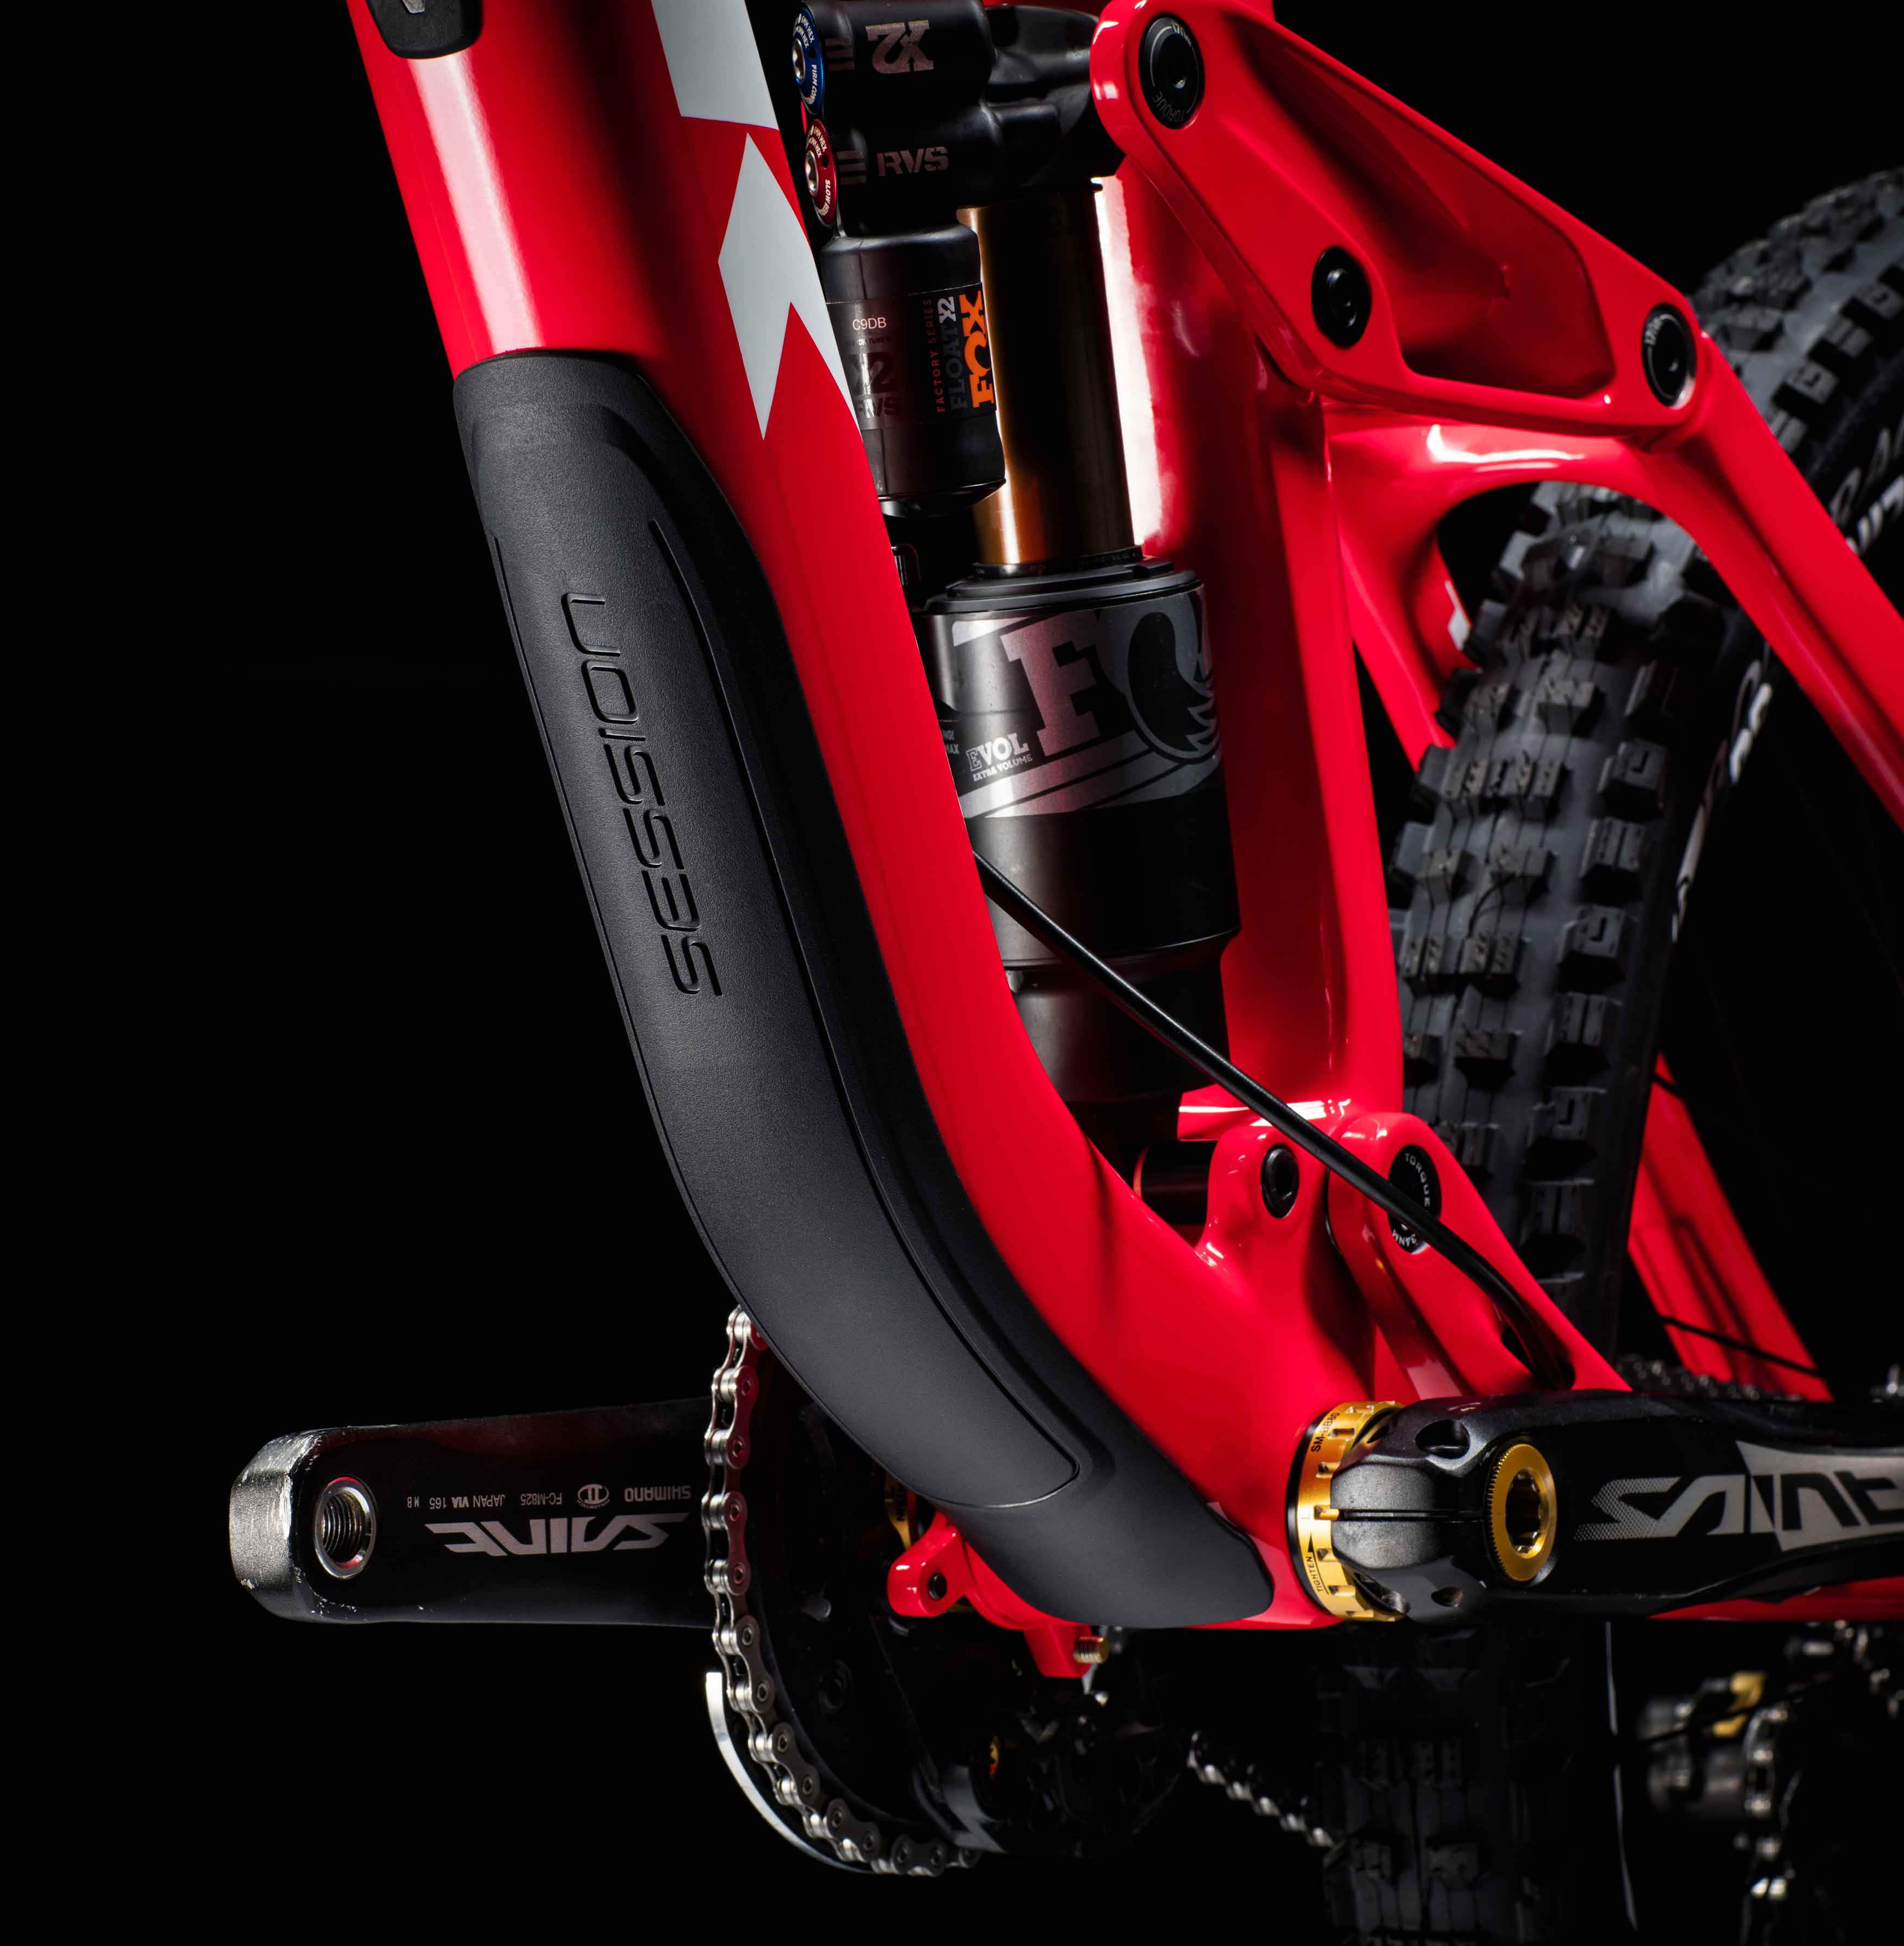 9ce7346bfb0 Trek also claims the suspension is more responsive at the beginning of the  stroke, allowing the bike to respond to smaller bumps, so it tracks the  ground ...